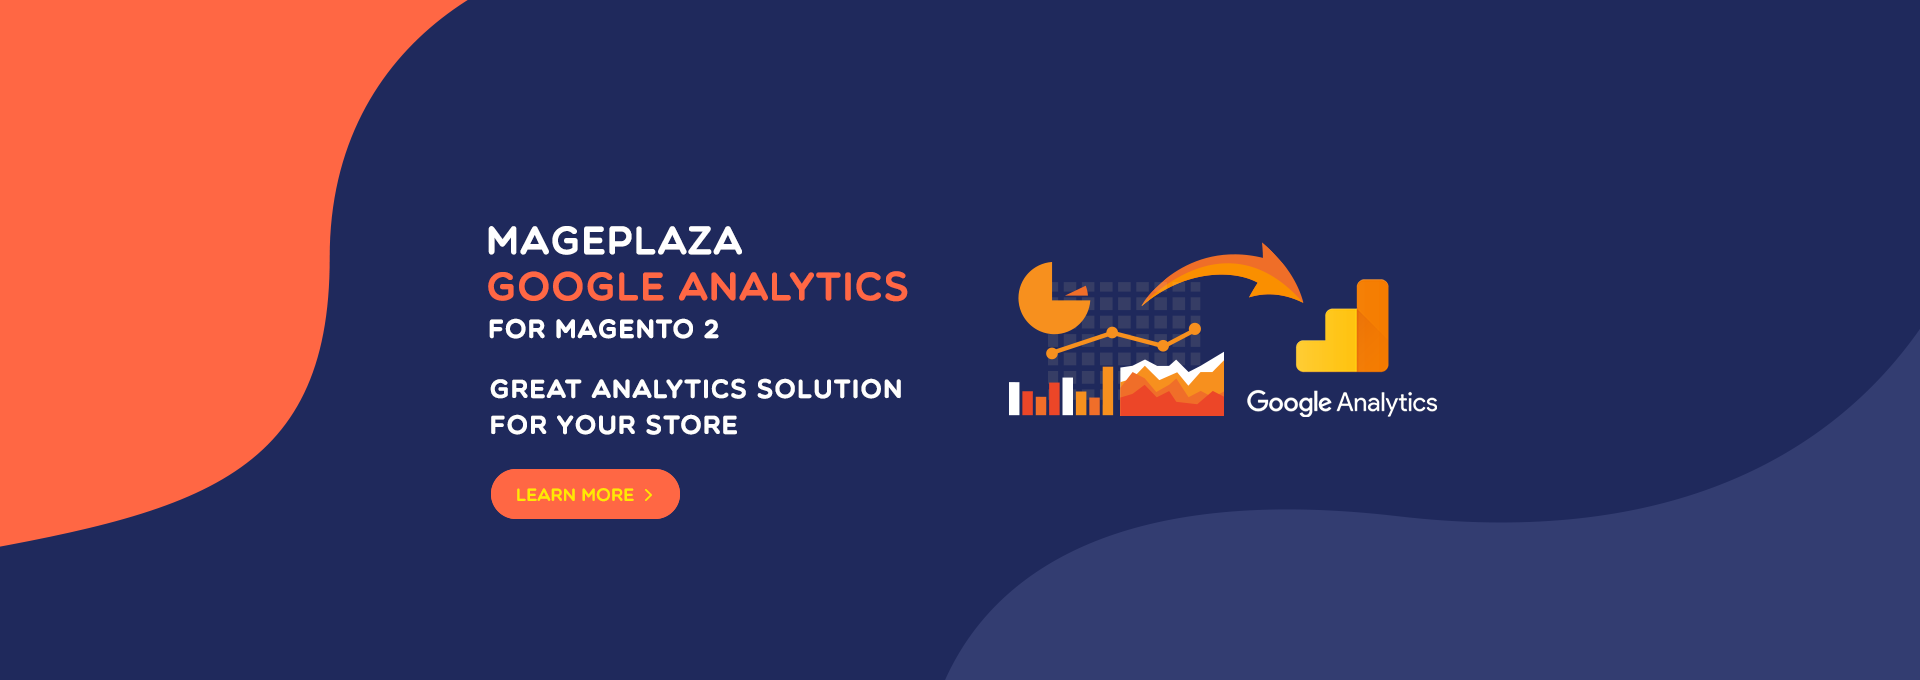 How to Integrate Google Analytics in Magento 2